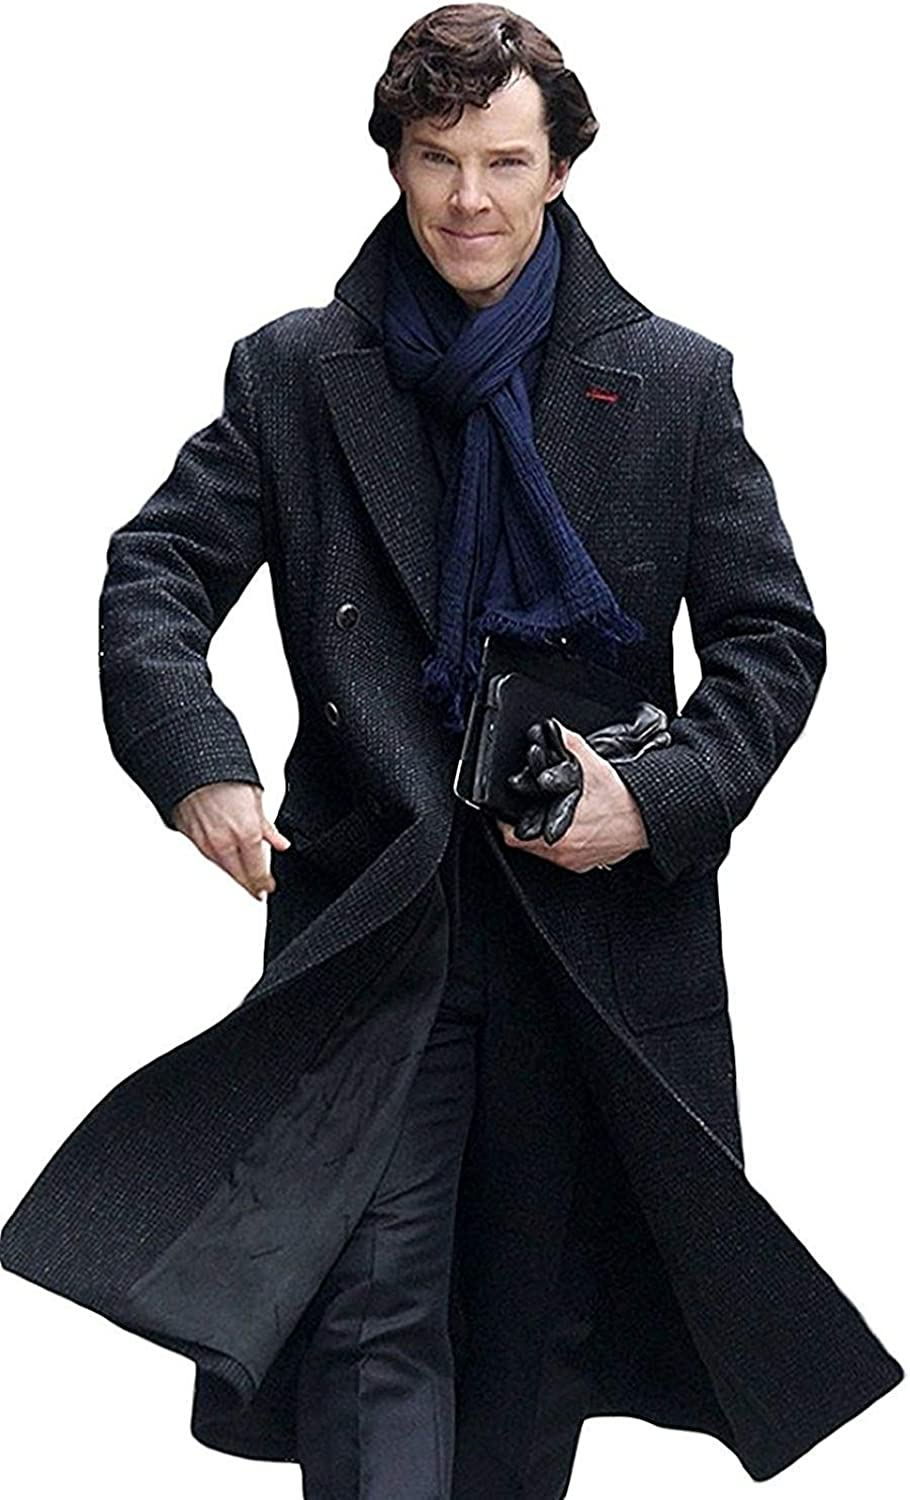 Sherlock Holmes Bandit Cumberbatch Detective Style Black Wool Long Trench Coat Warm Jacket